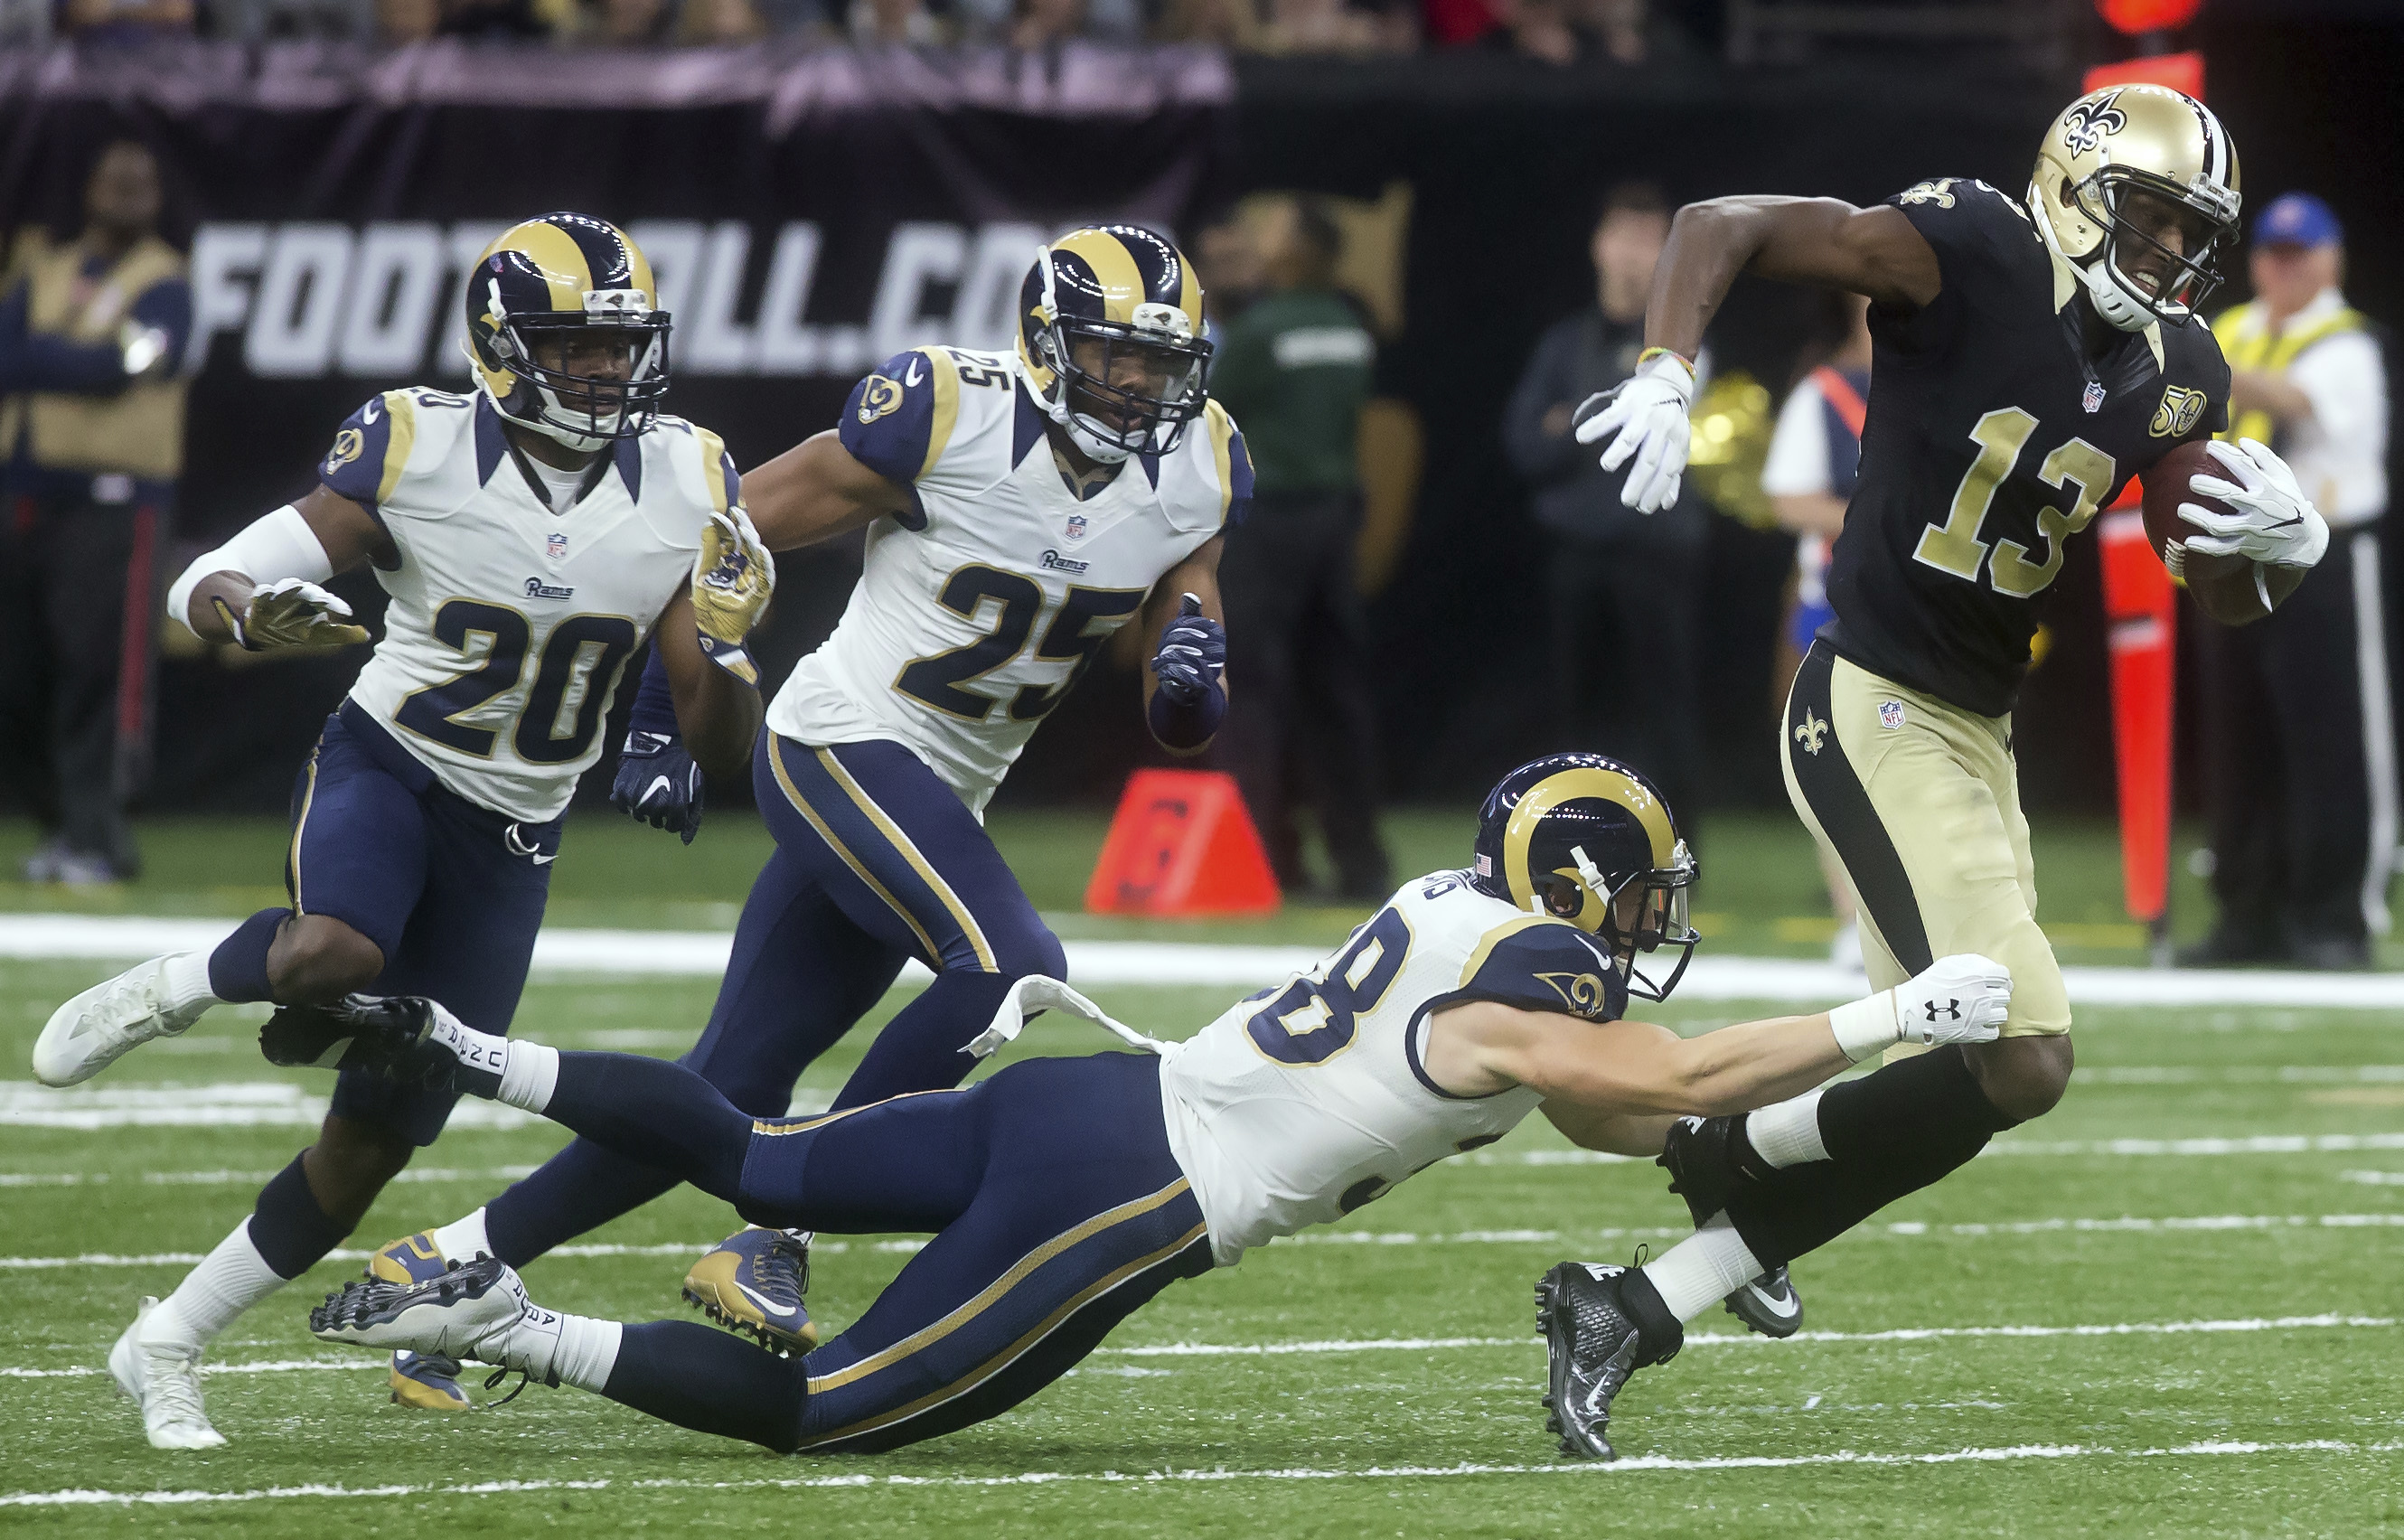 New Orleans Saints wide receiver Michael Thomas stretches to avoid the tackle of Los Angeles Rams' Cody Davis (38) as Rams' LaMarcus Joyner (20) and T.J. McDonald (25) trail the play during an NFL football game in New Orleans, Sunday, Nov. 27, 2016. (Chri